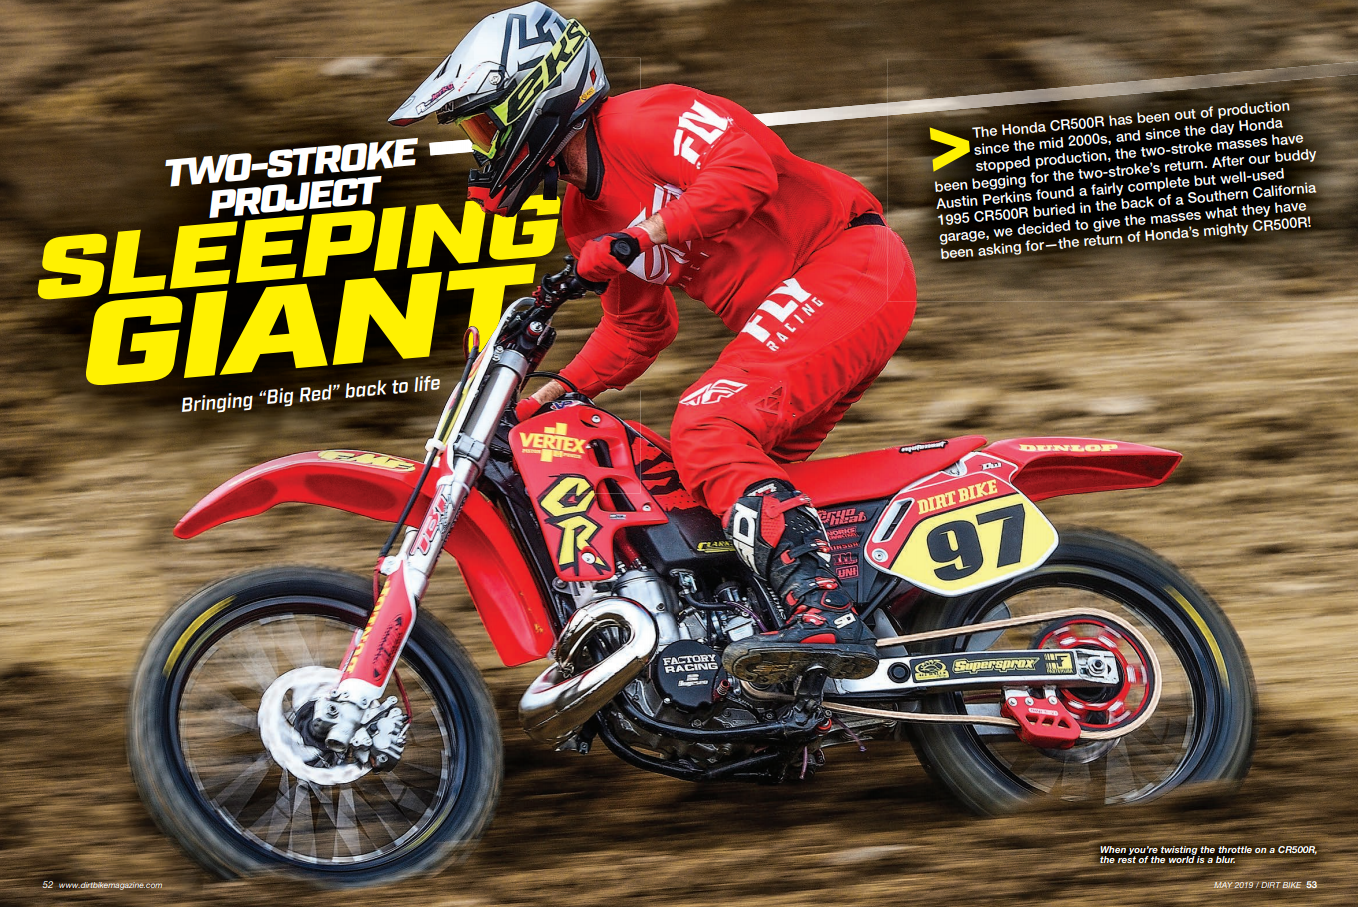 Here is our CR500 build in the new May issue of Dirt Bike magazine.